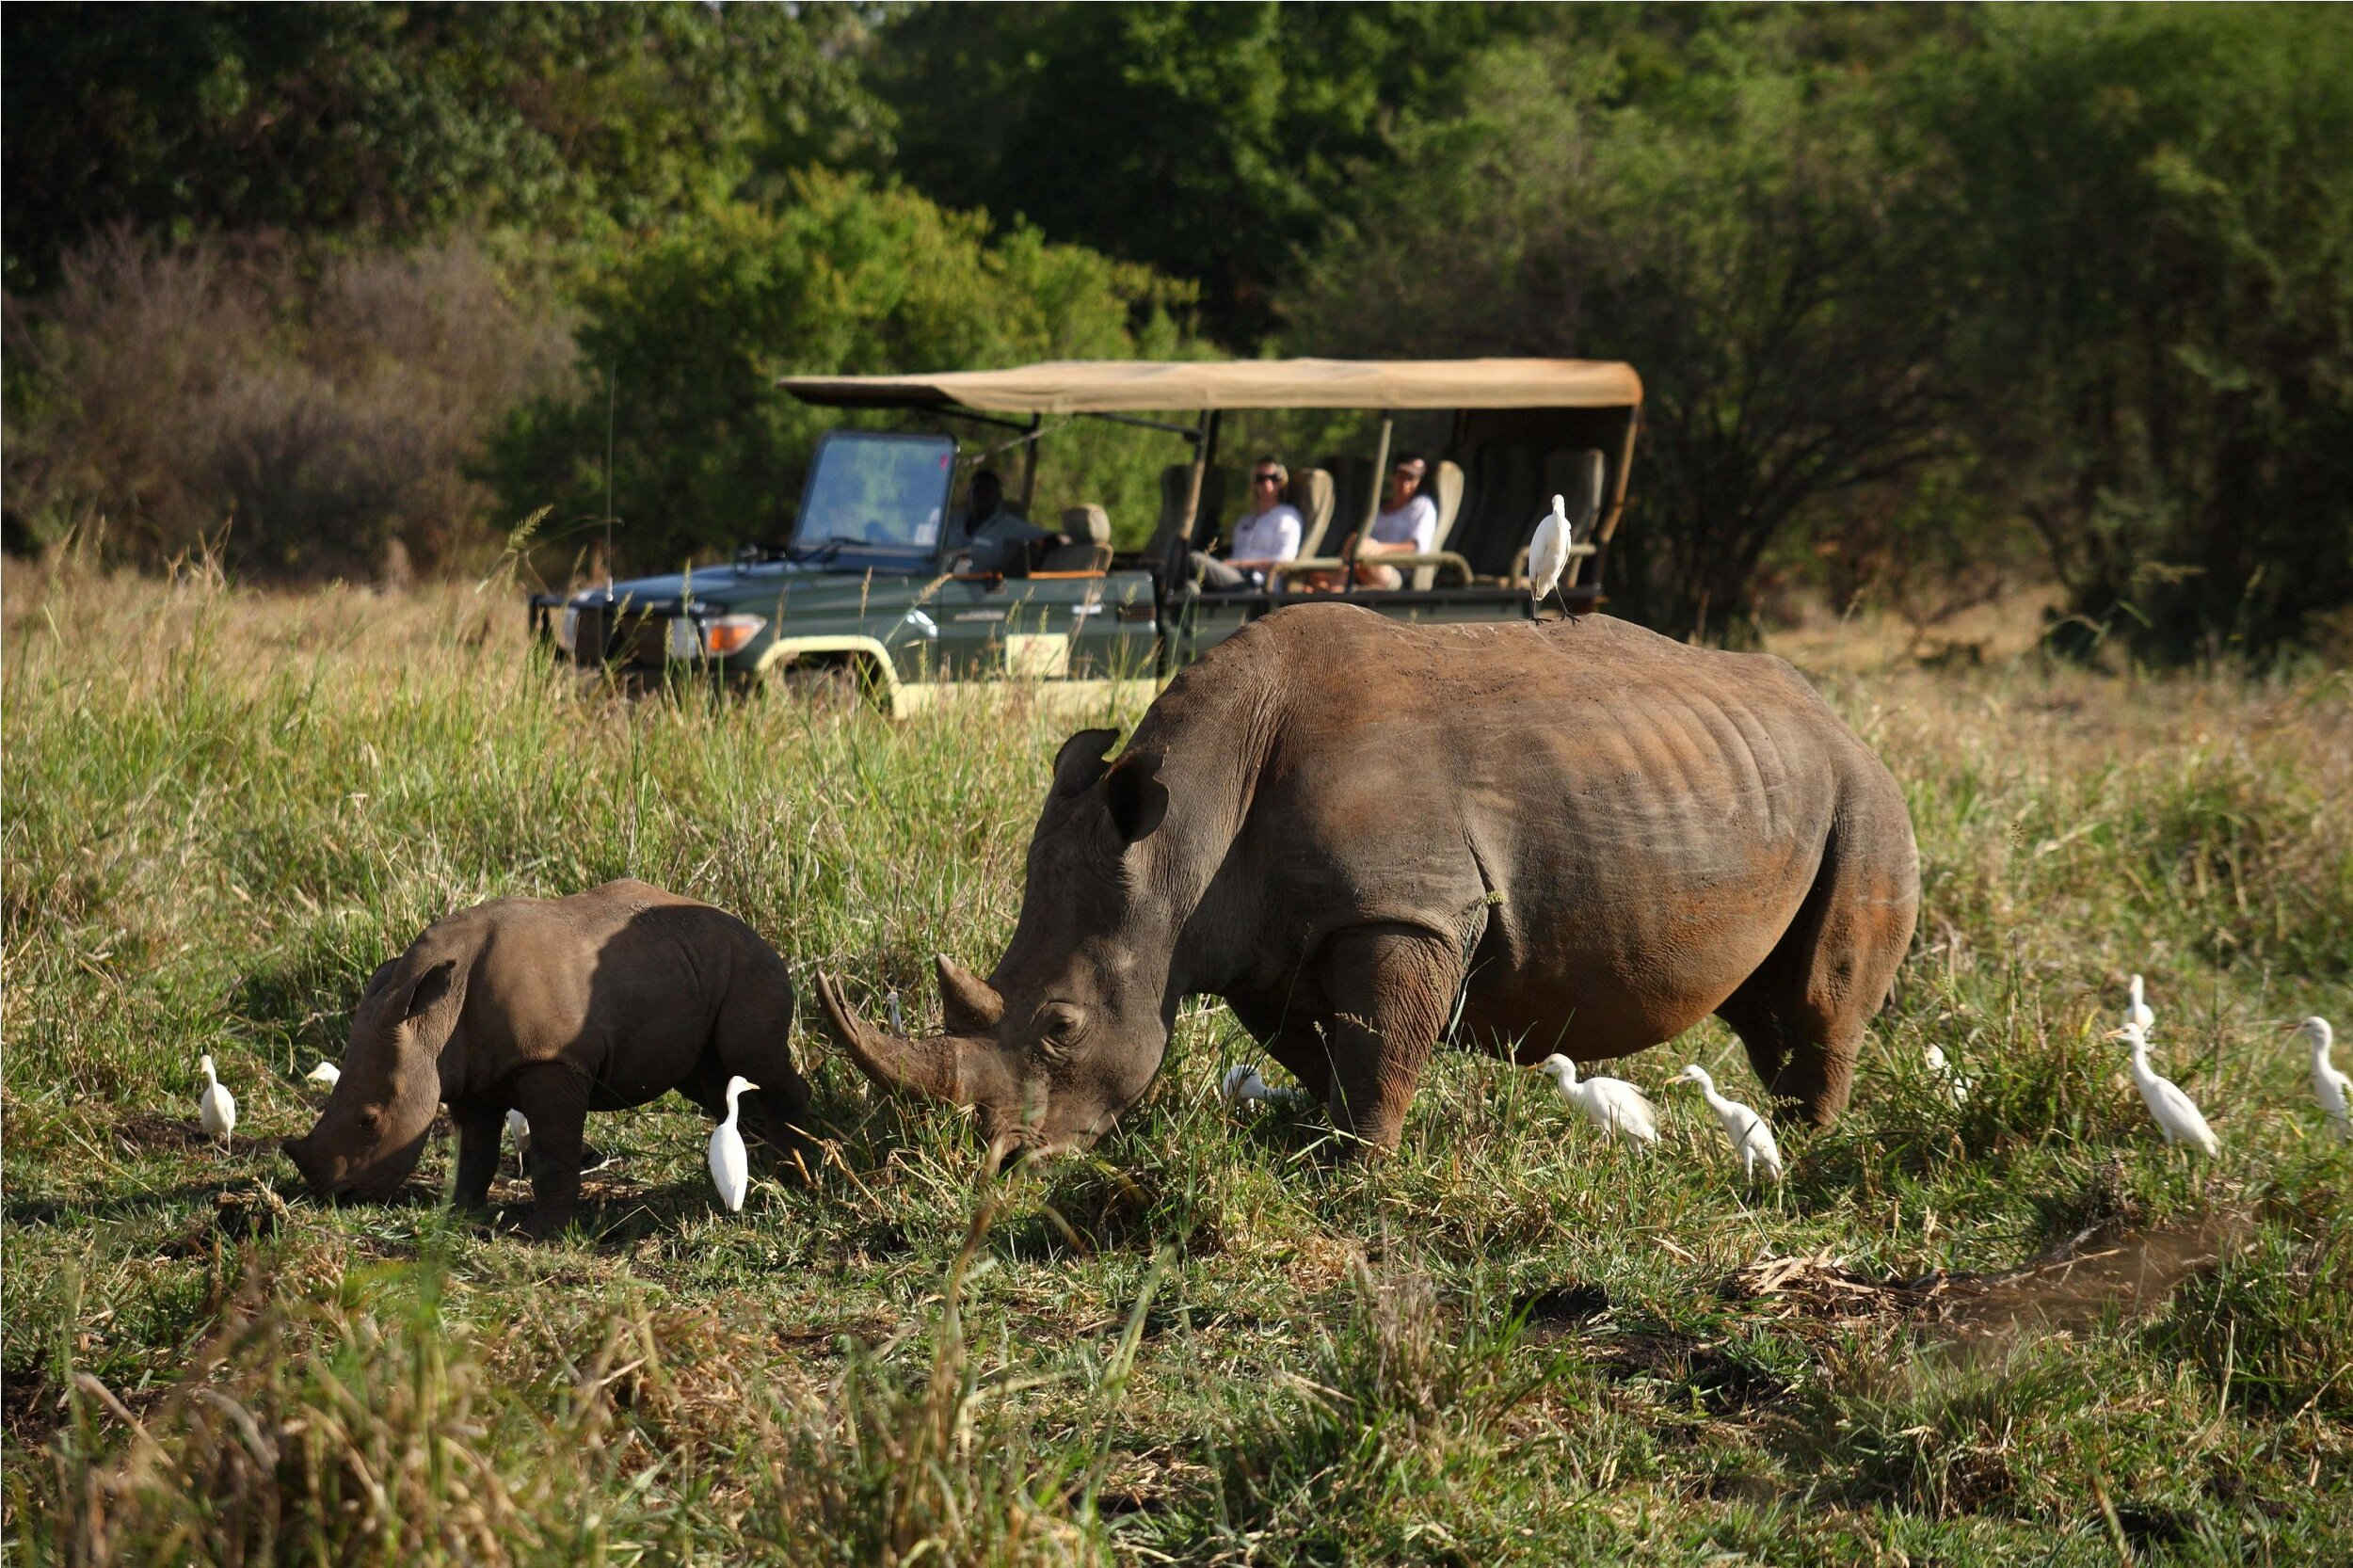 Rhino viewing with local guides